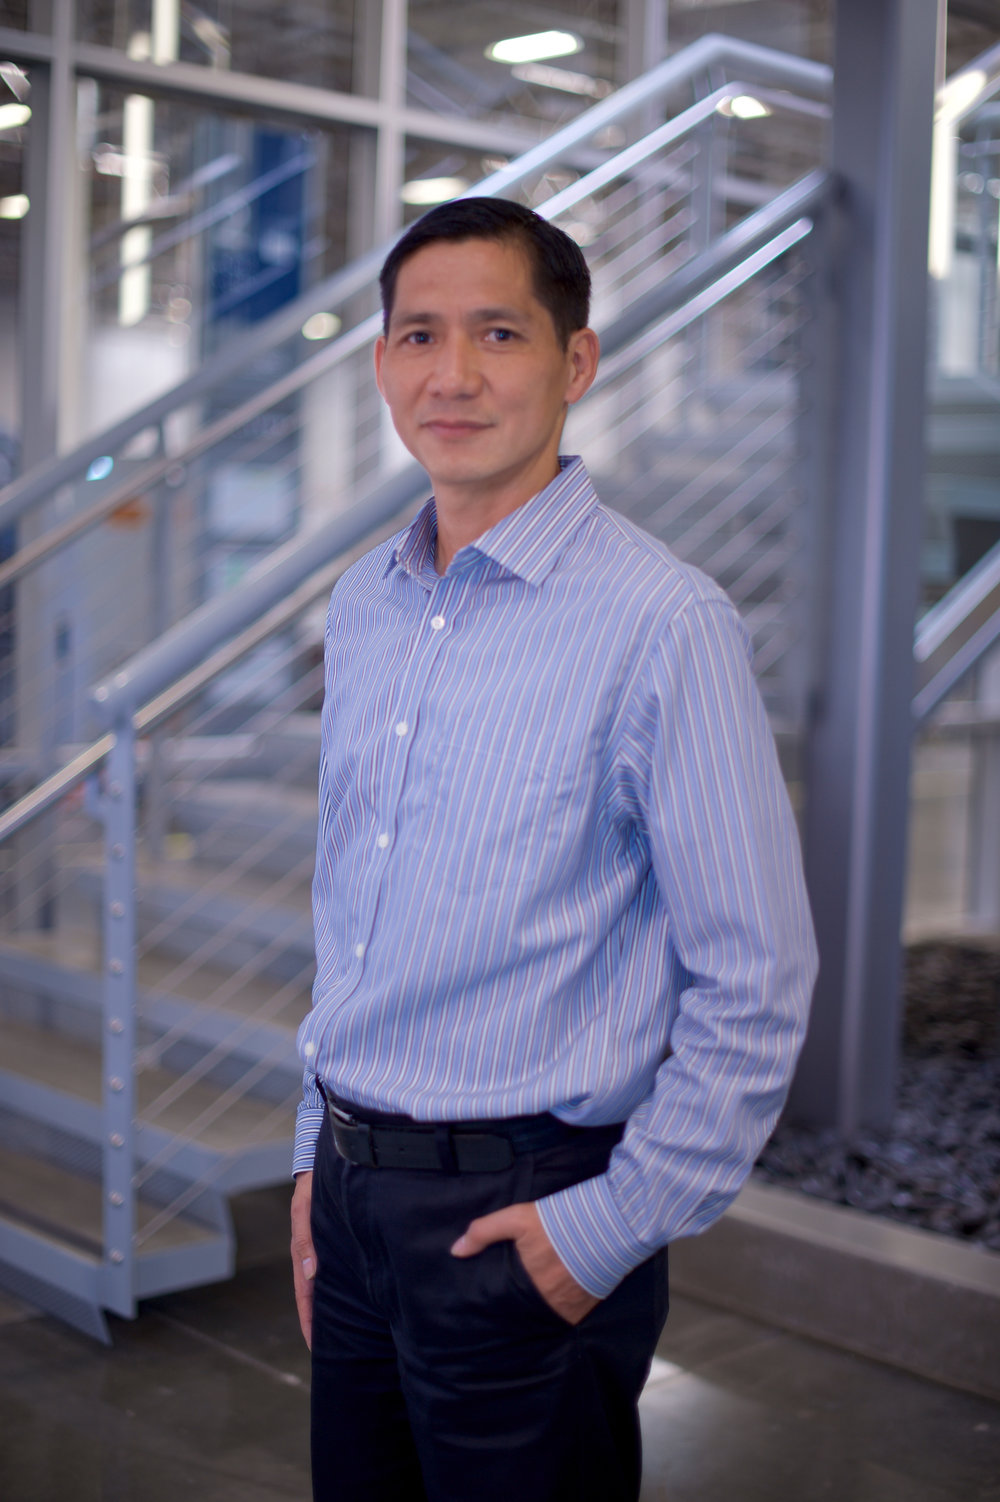 Matthew Hoang, Senior Design Engineer, has worked at EnCore since 2012, and became one of the first nine people on the LIFT team in 2015.